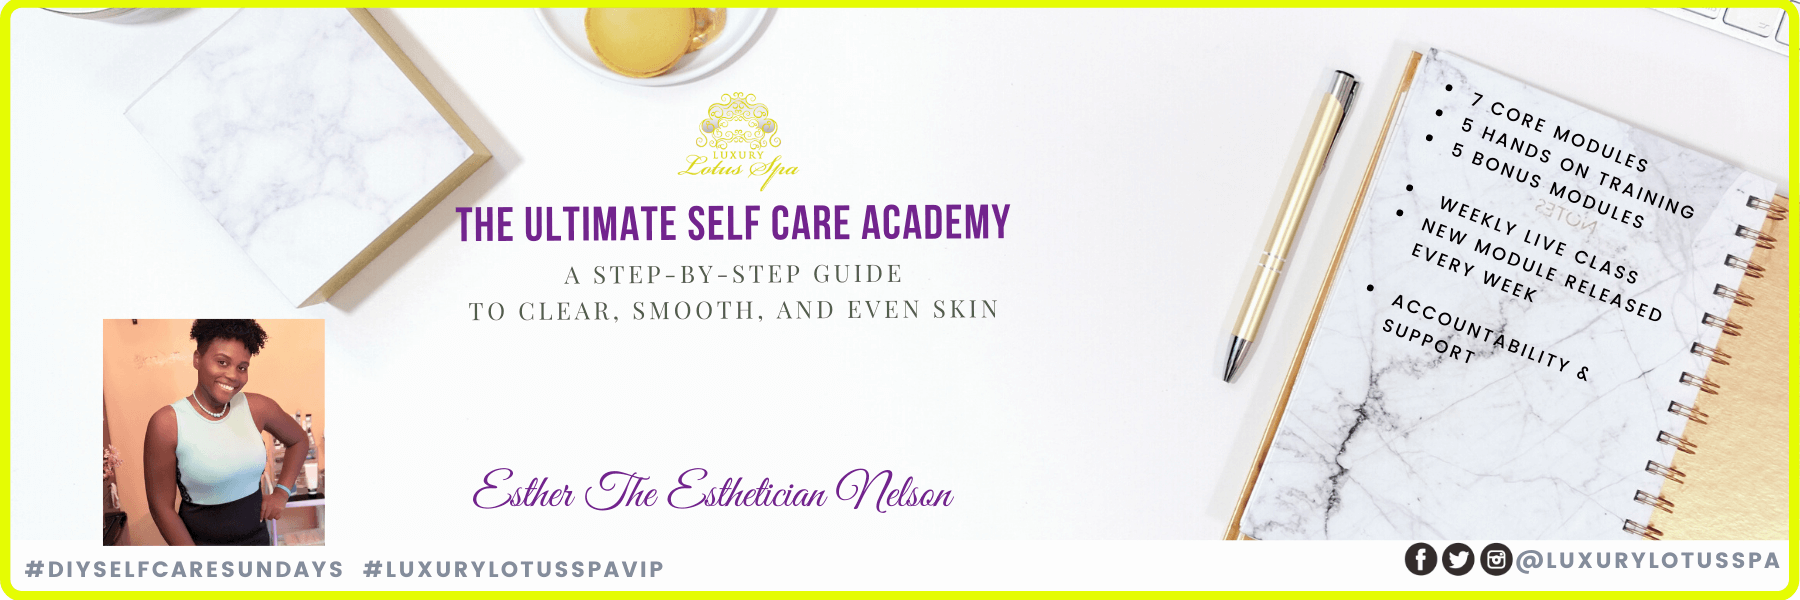 The ultimate self Care Academy luxury lotus spa 21 days clear skin challenge with esther the esthetician nelson